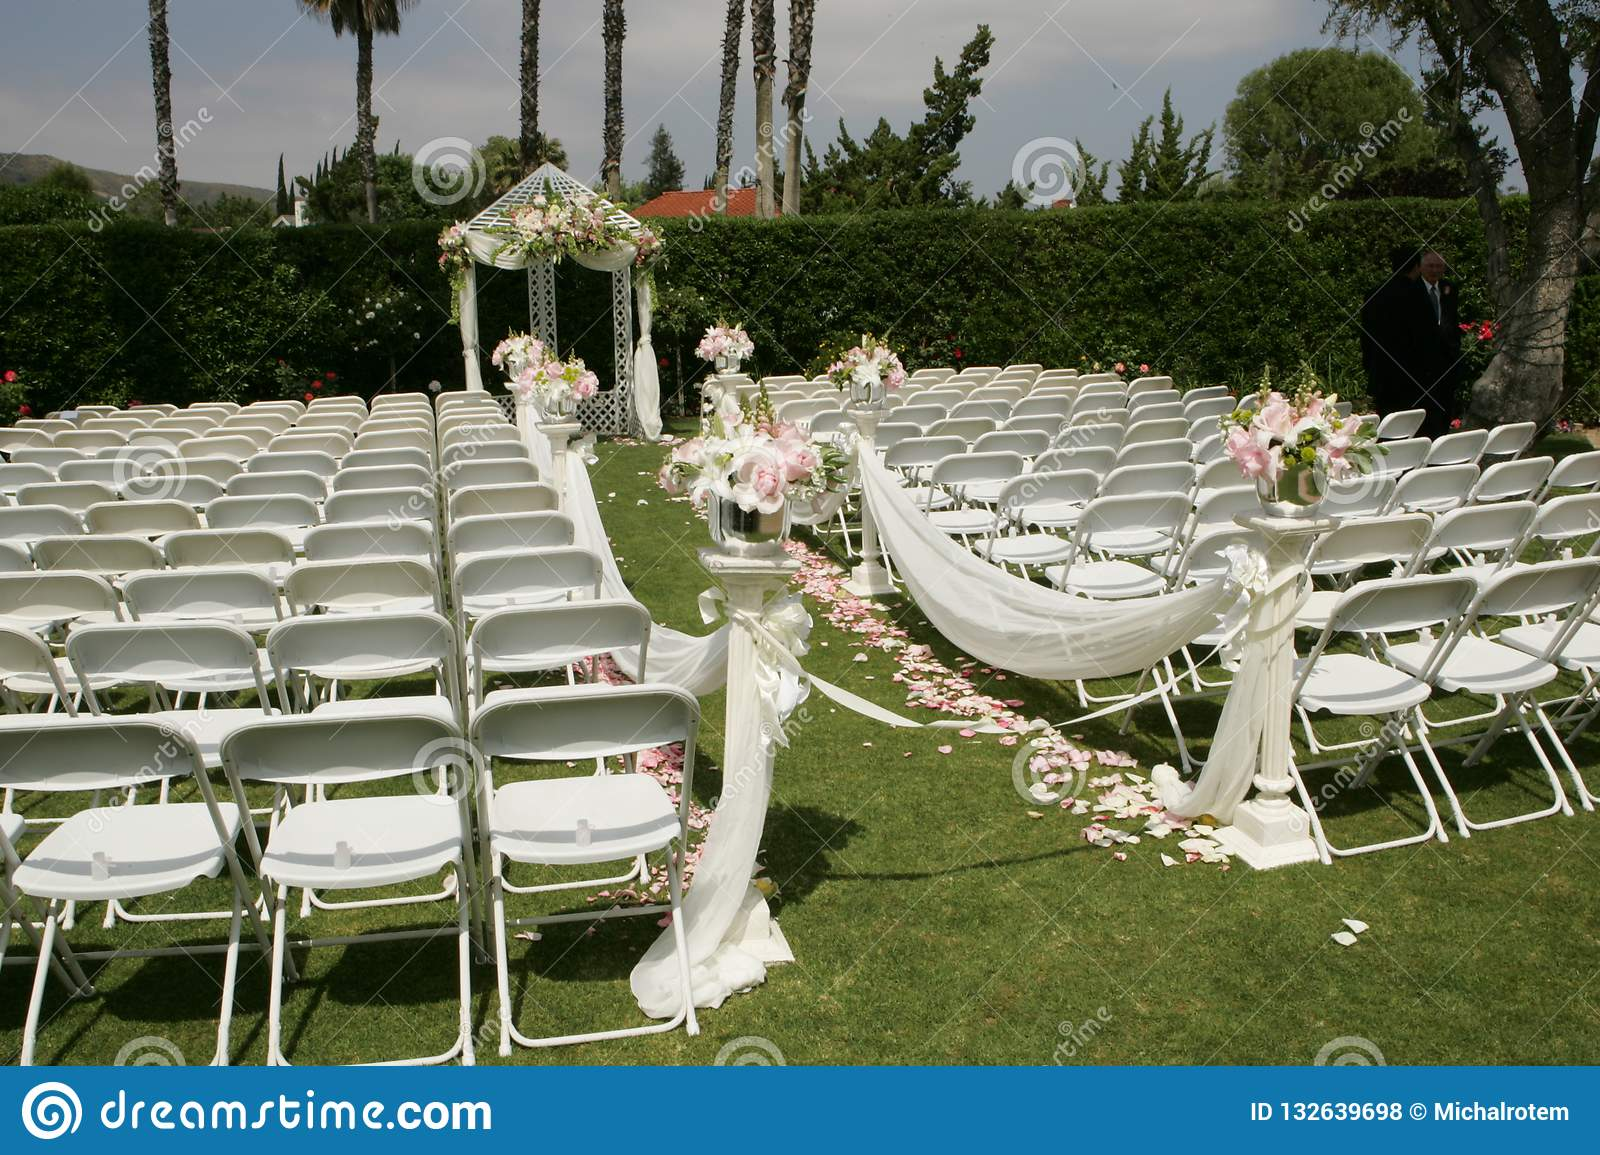 Outdoor Wedding White Chairs Bridal Party Stock Photo Image Of Closeup Chairs 132639698